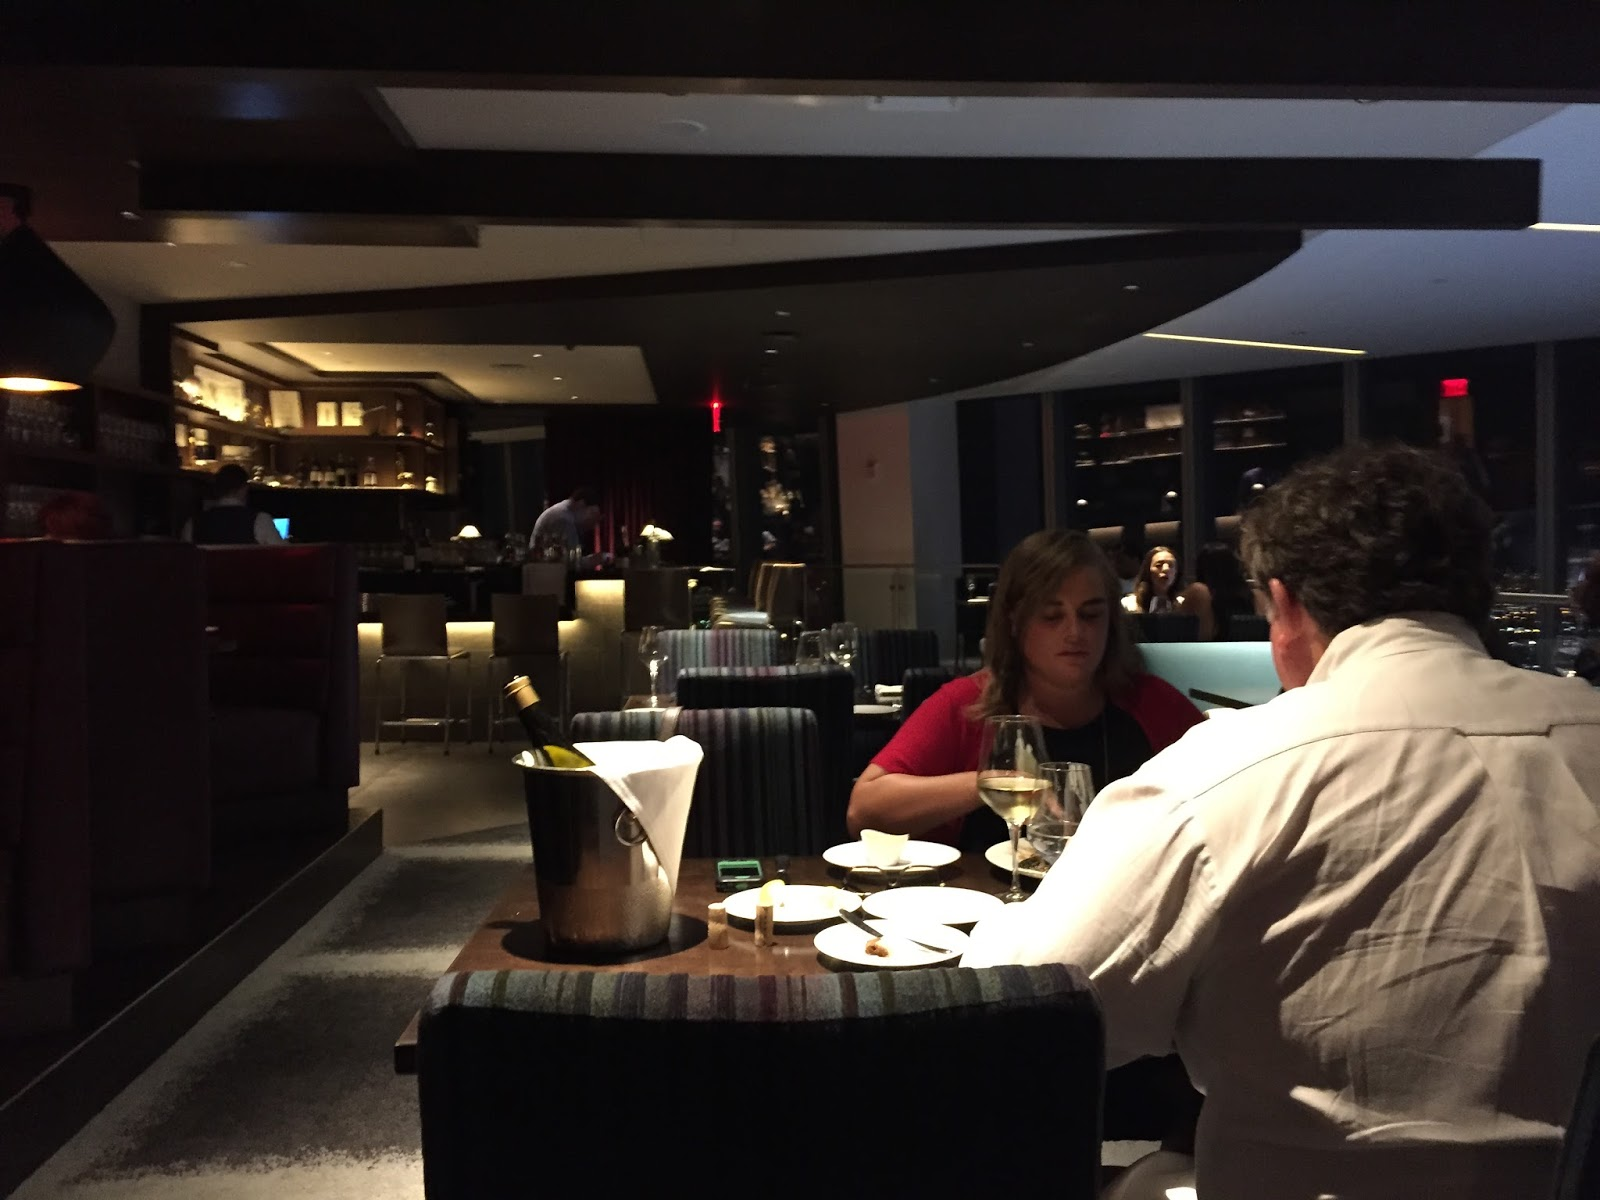 """Dinner at """"One Dine"""" -- The Restaurant at the Top of the ..."""